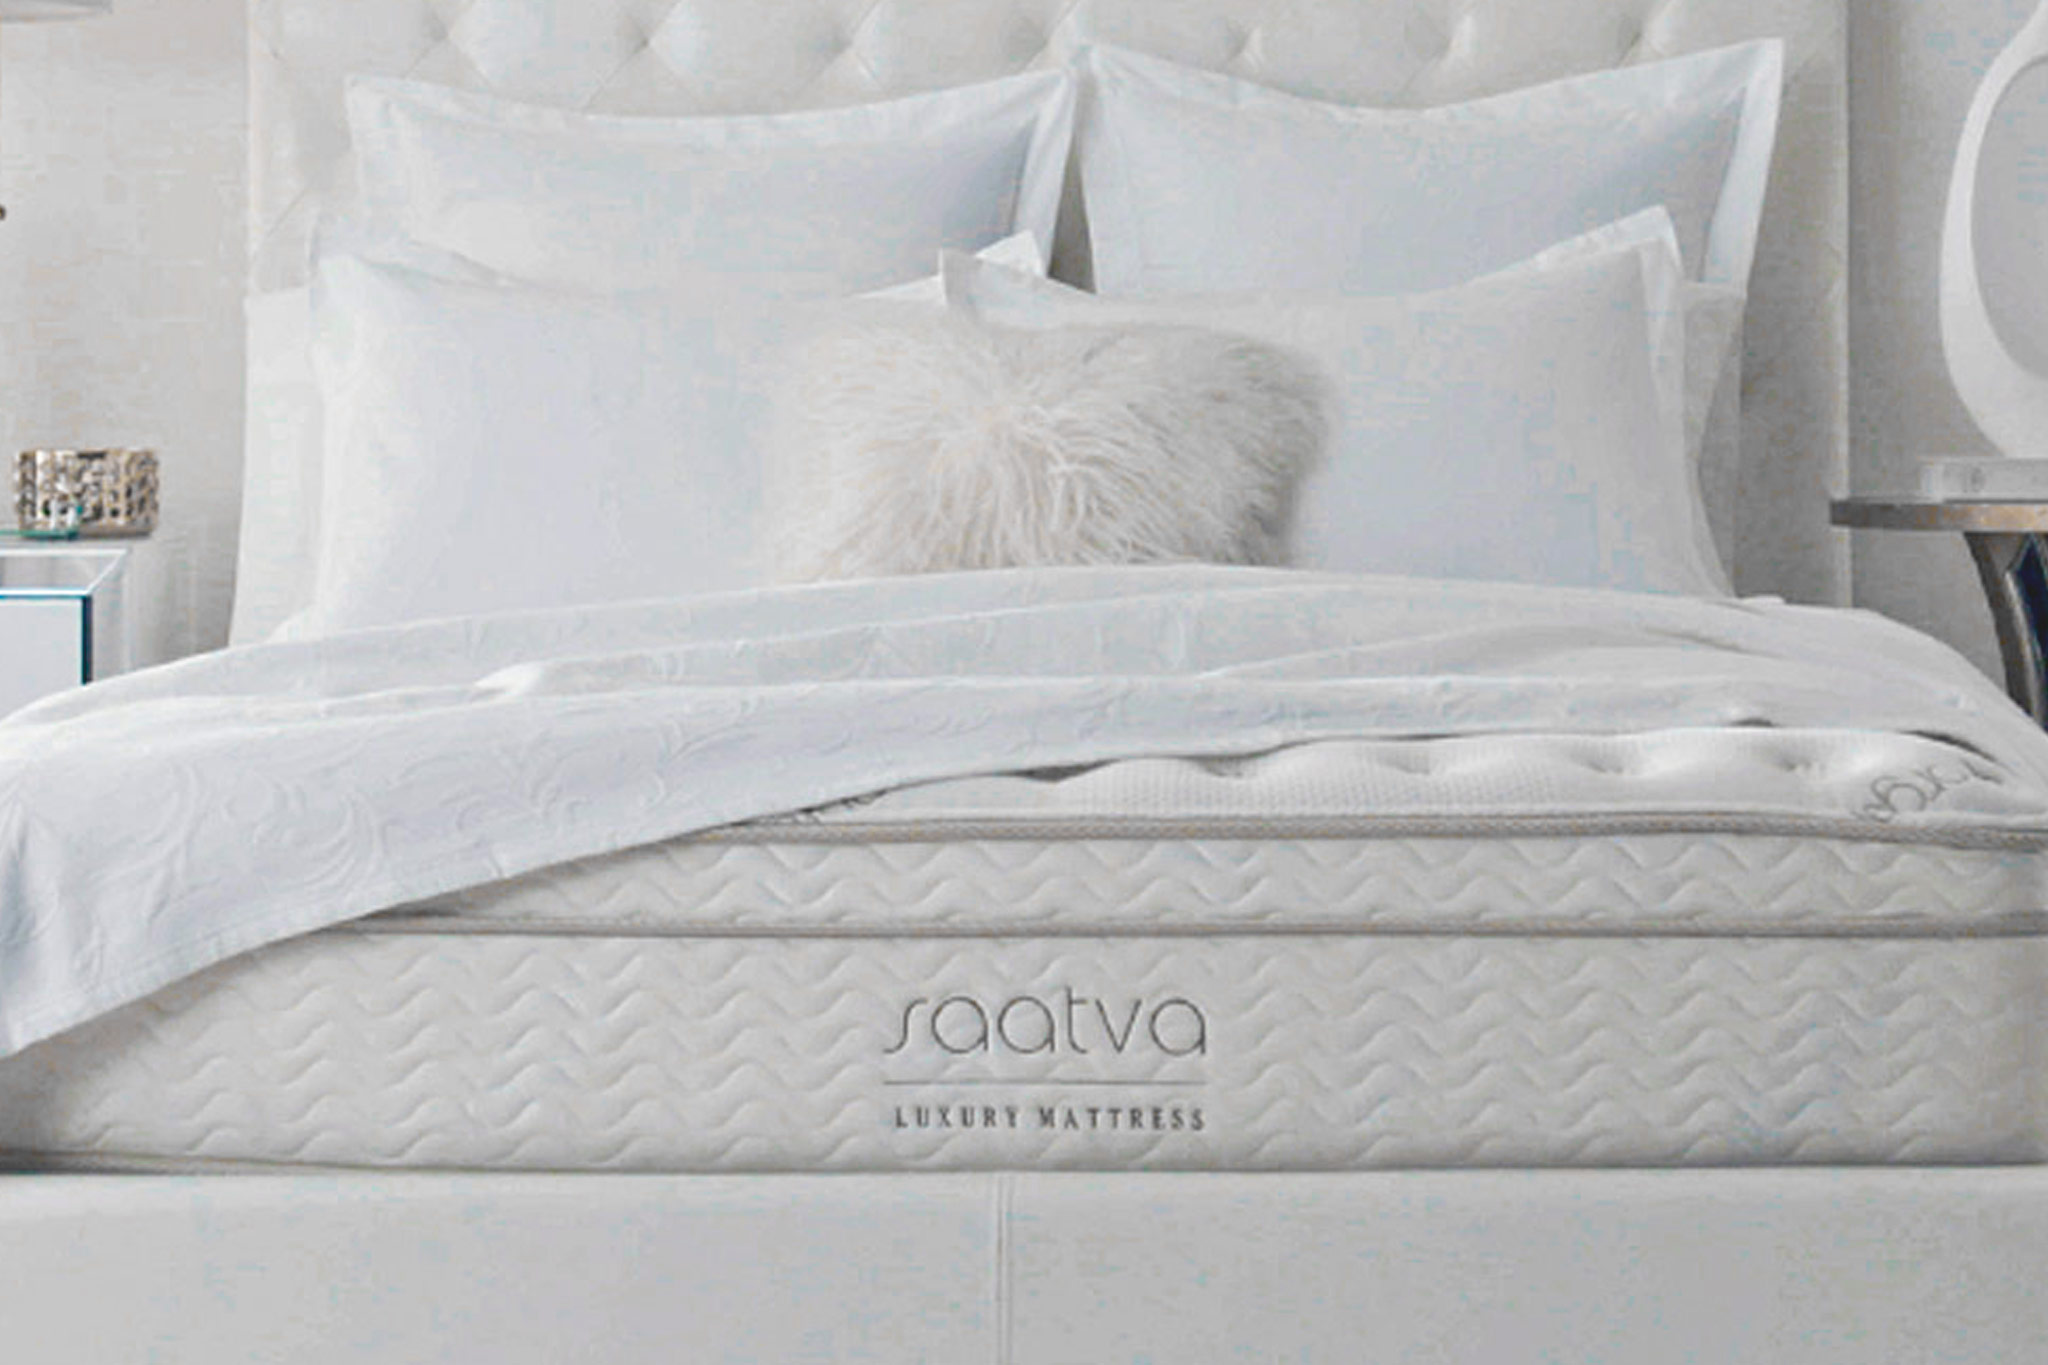 Saatva Mattress Reviews and Buying Guide by www.snoremagazine.com